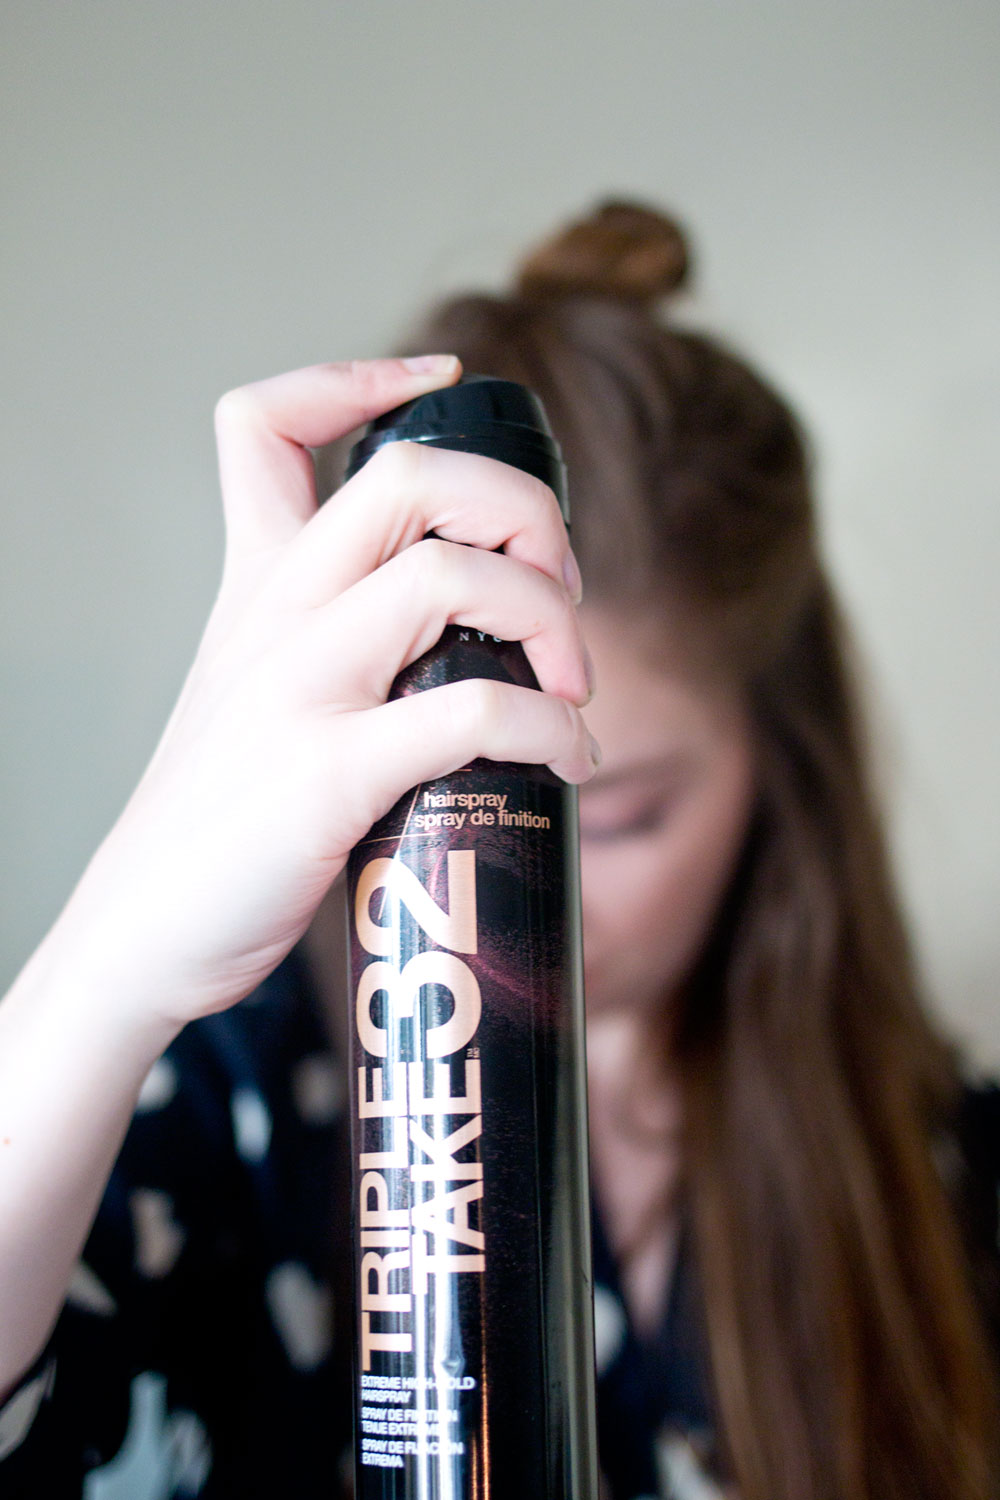 Redken Triple Take 32 Extreme High Hold Hairspray Review // Hello Rigby Seattle Beauty & Hair Blog